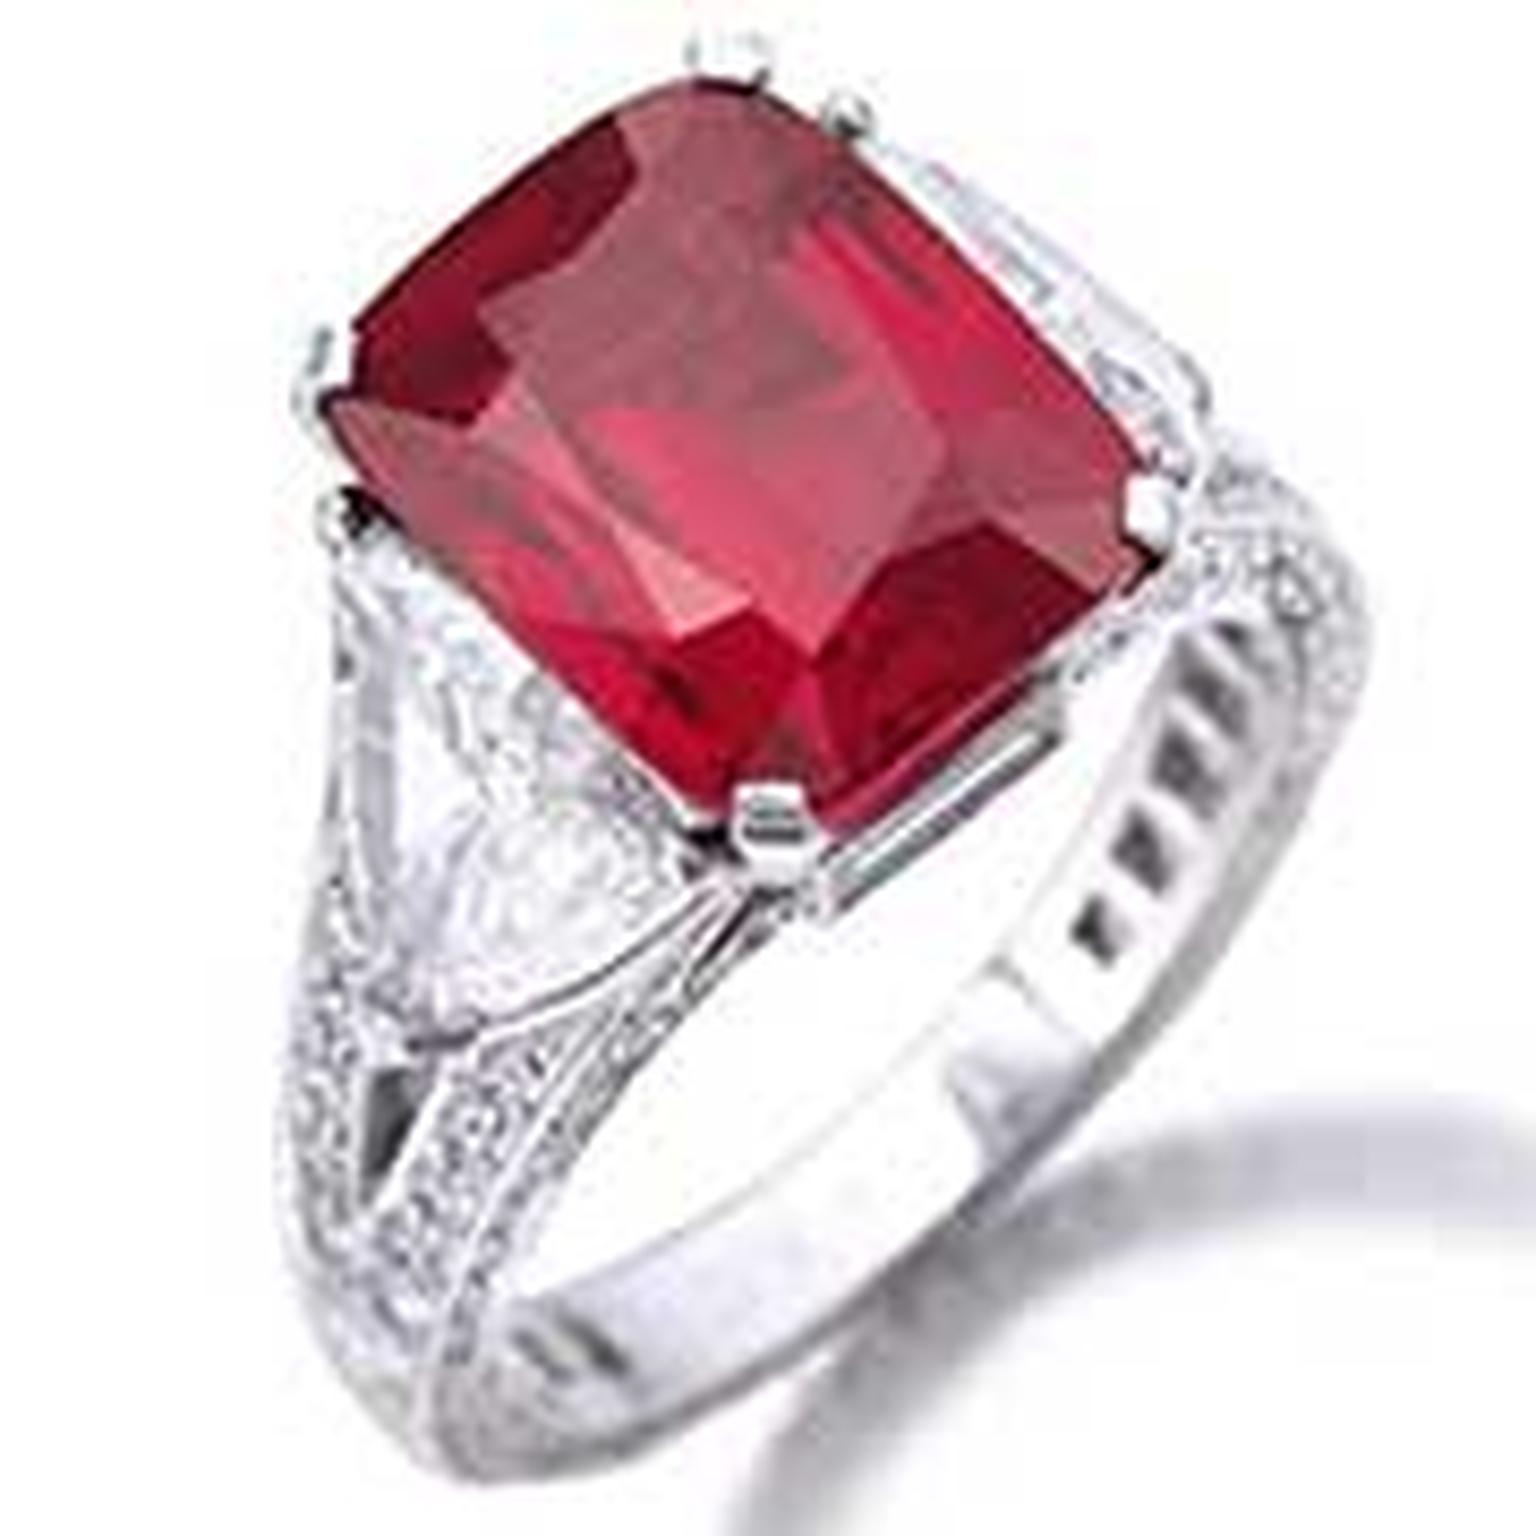 Graff ruby ring NL